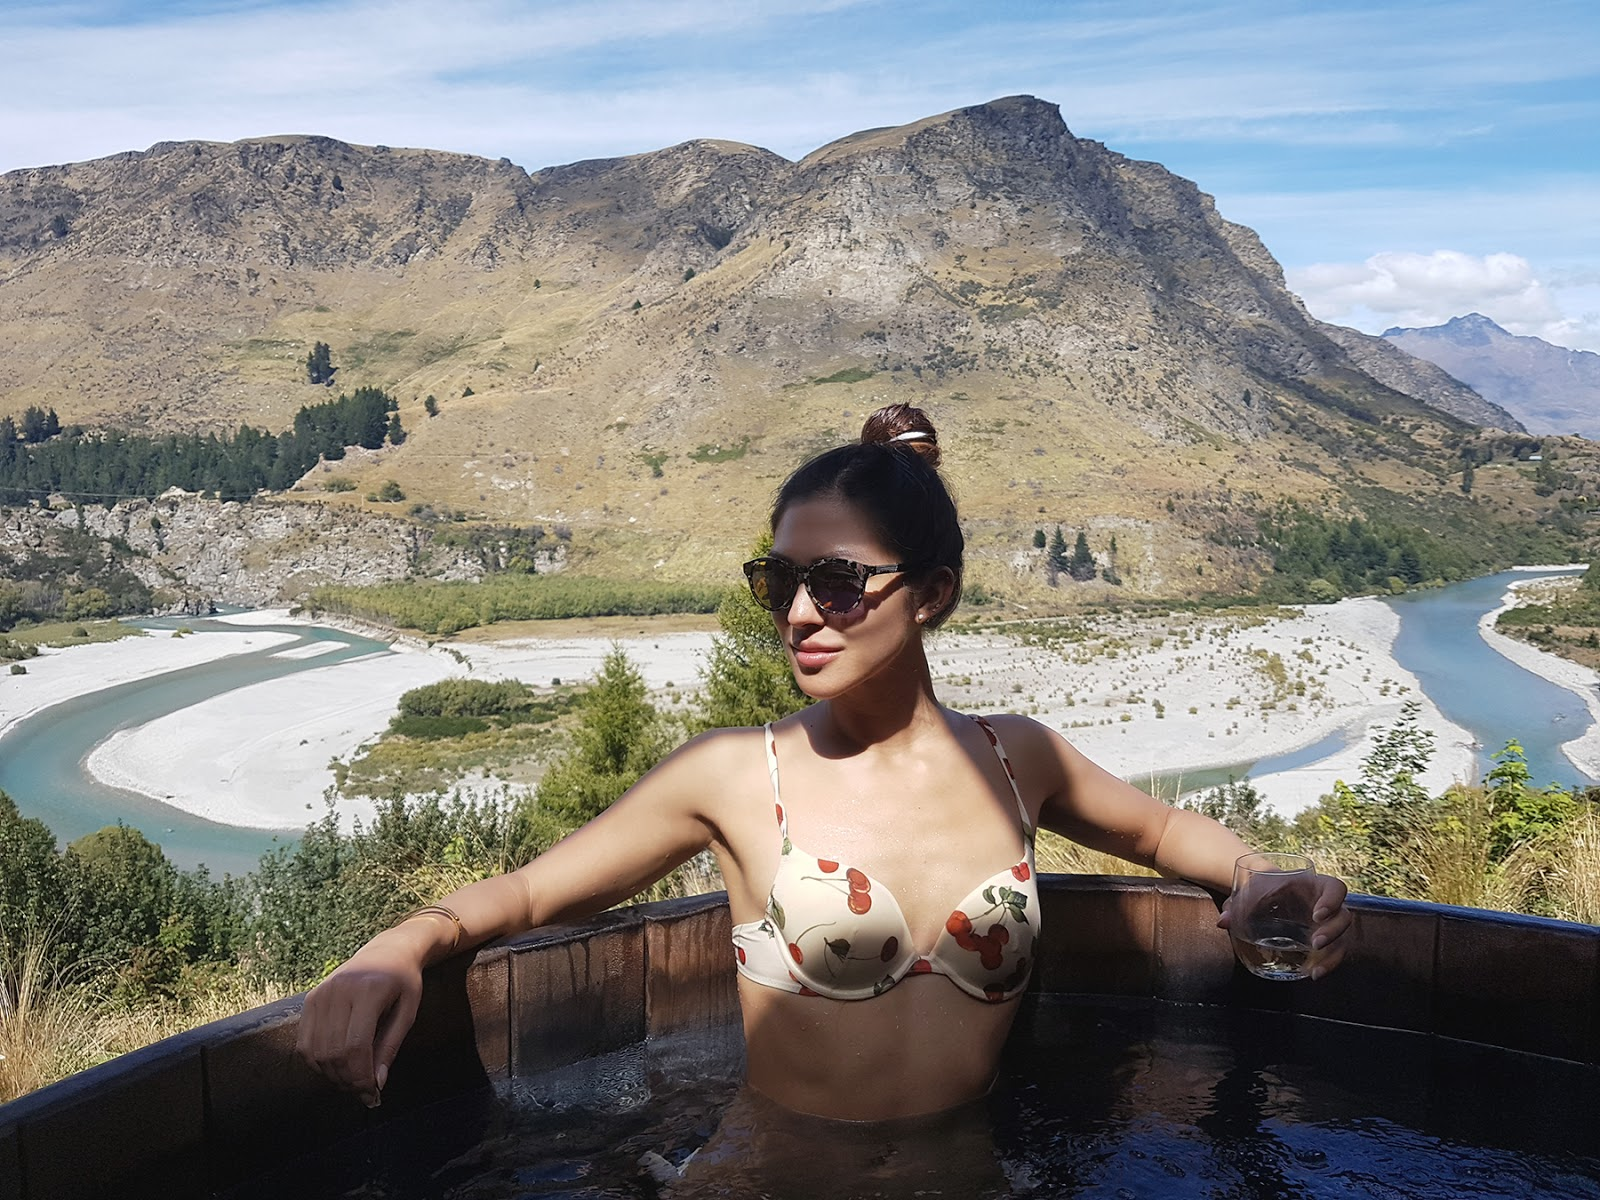 Euriental | luxury travel & style | Onsen Hot Pools Queenstown, New Zealand